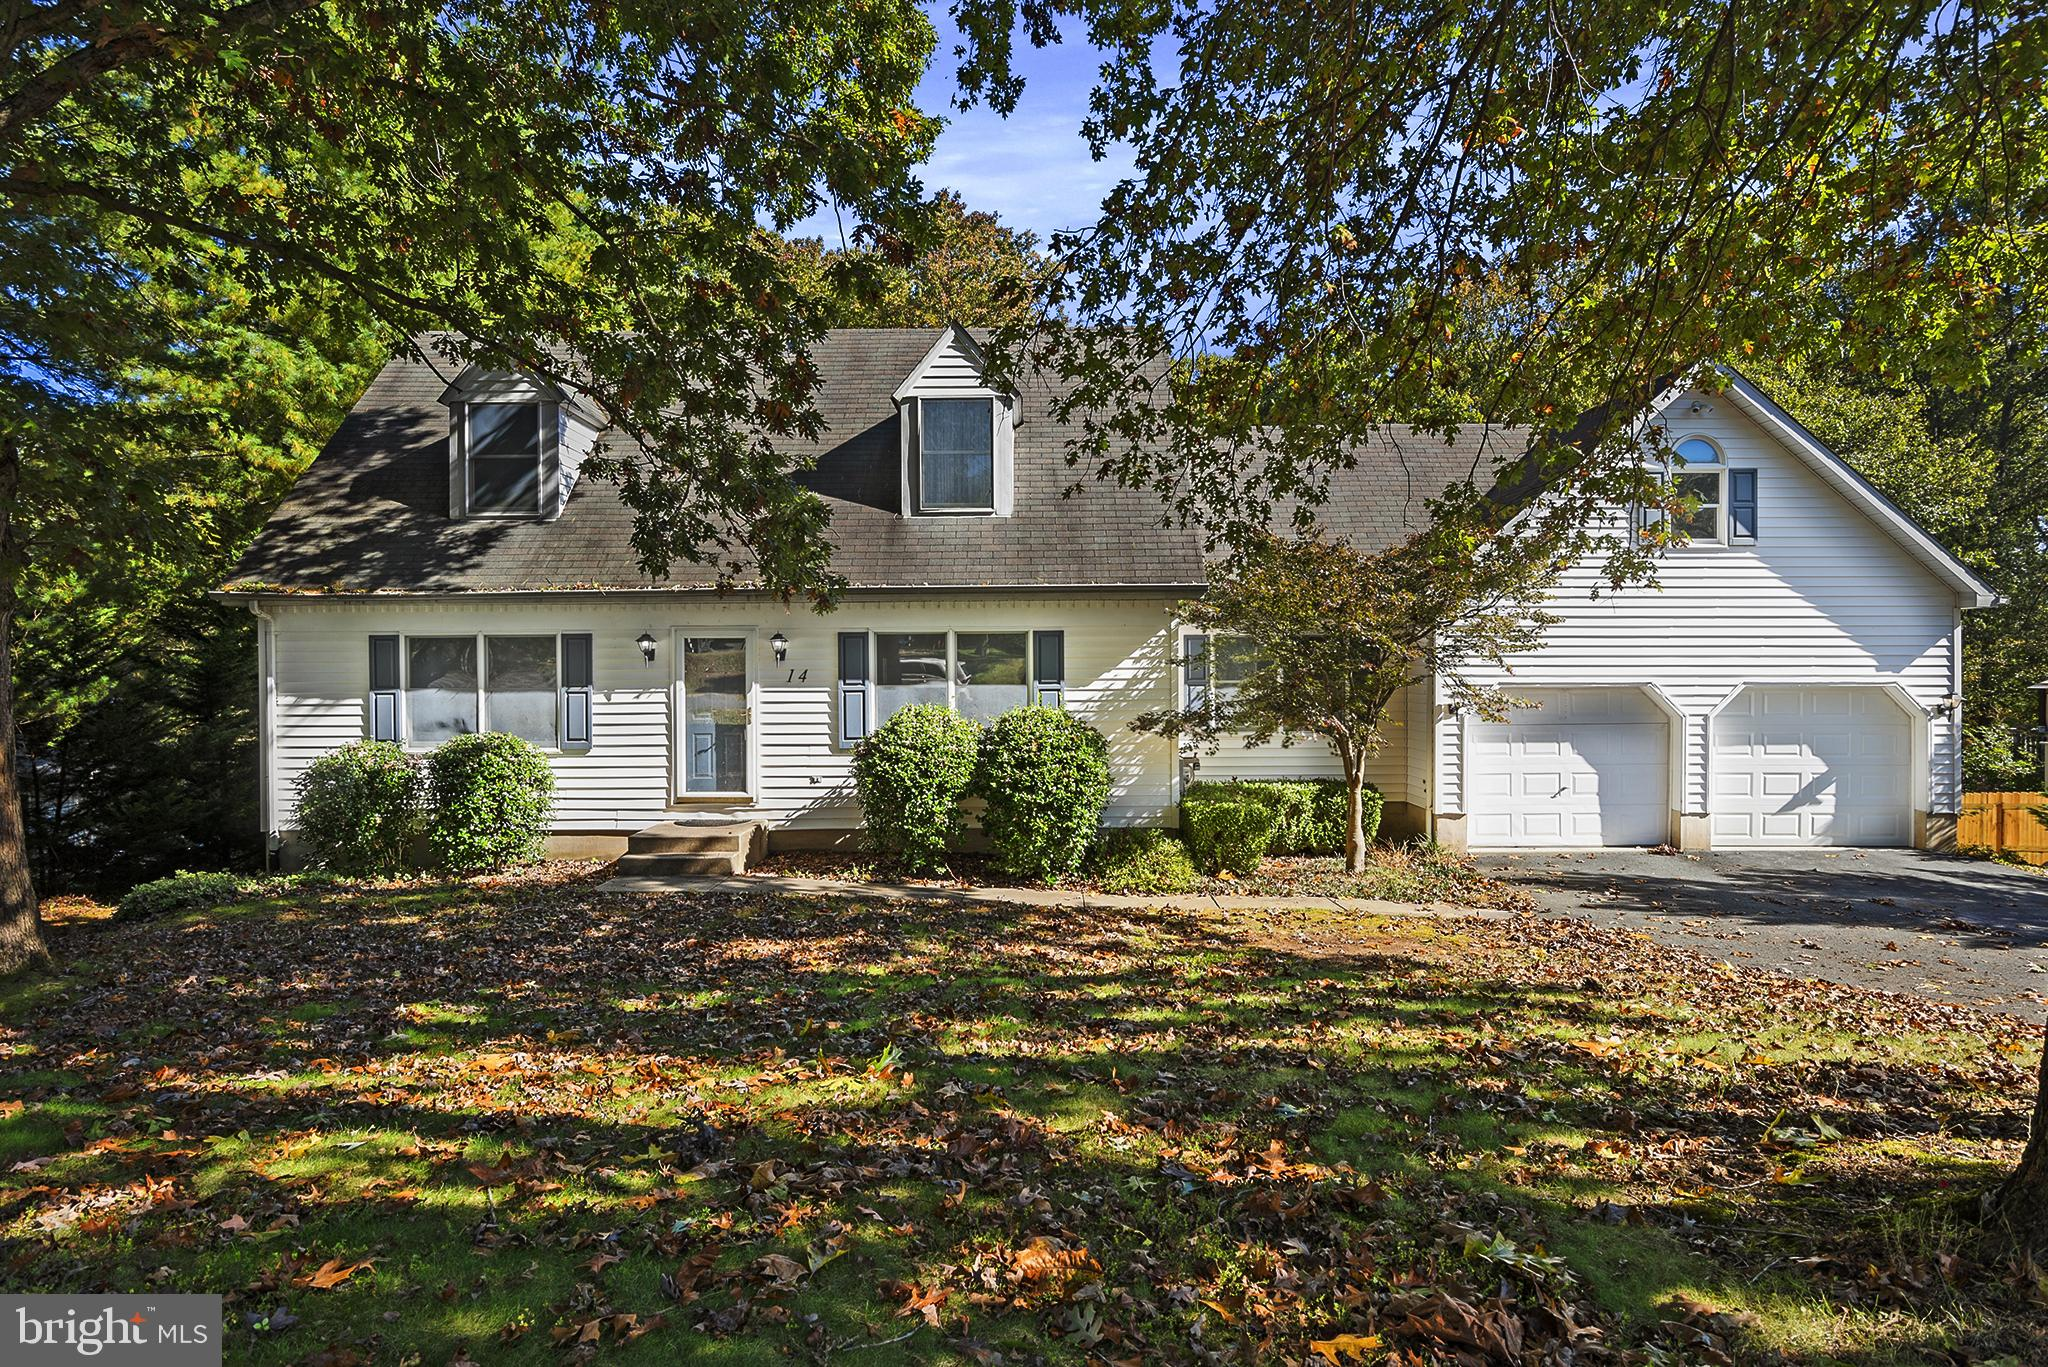 This four bedroom two bathroom Cape Cod house with two car garage situated on .778 acres in the desi